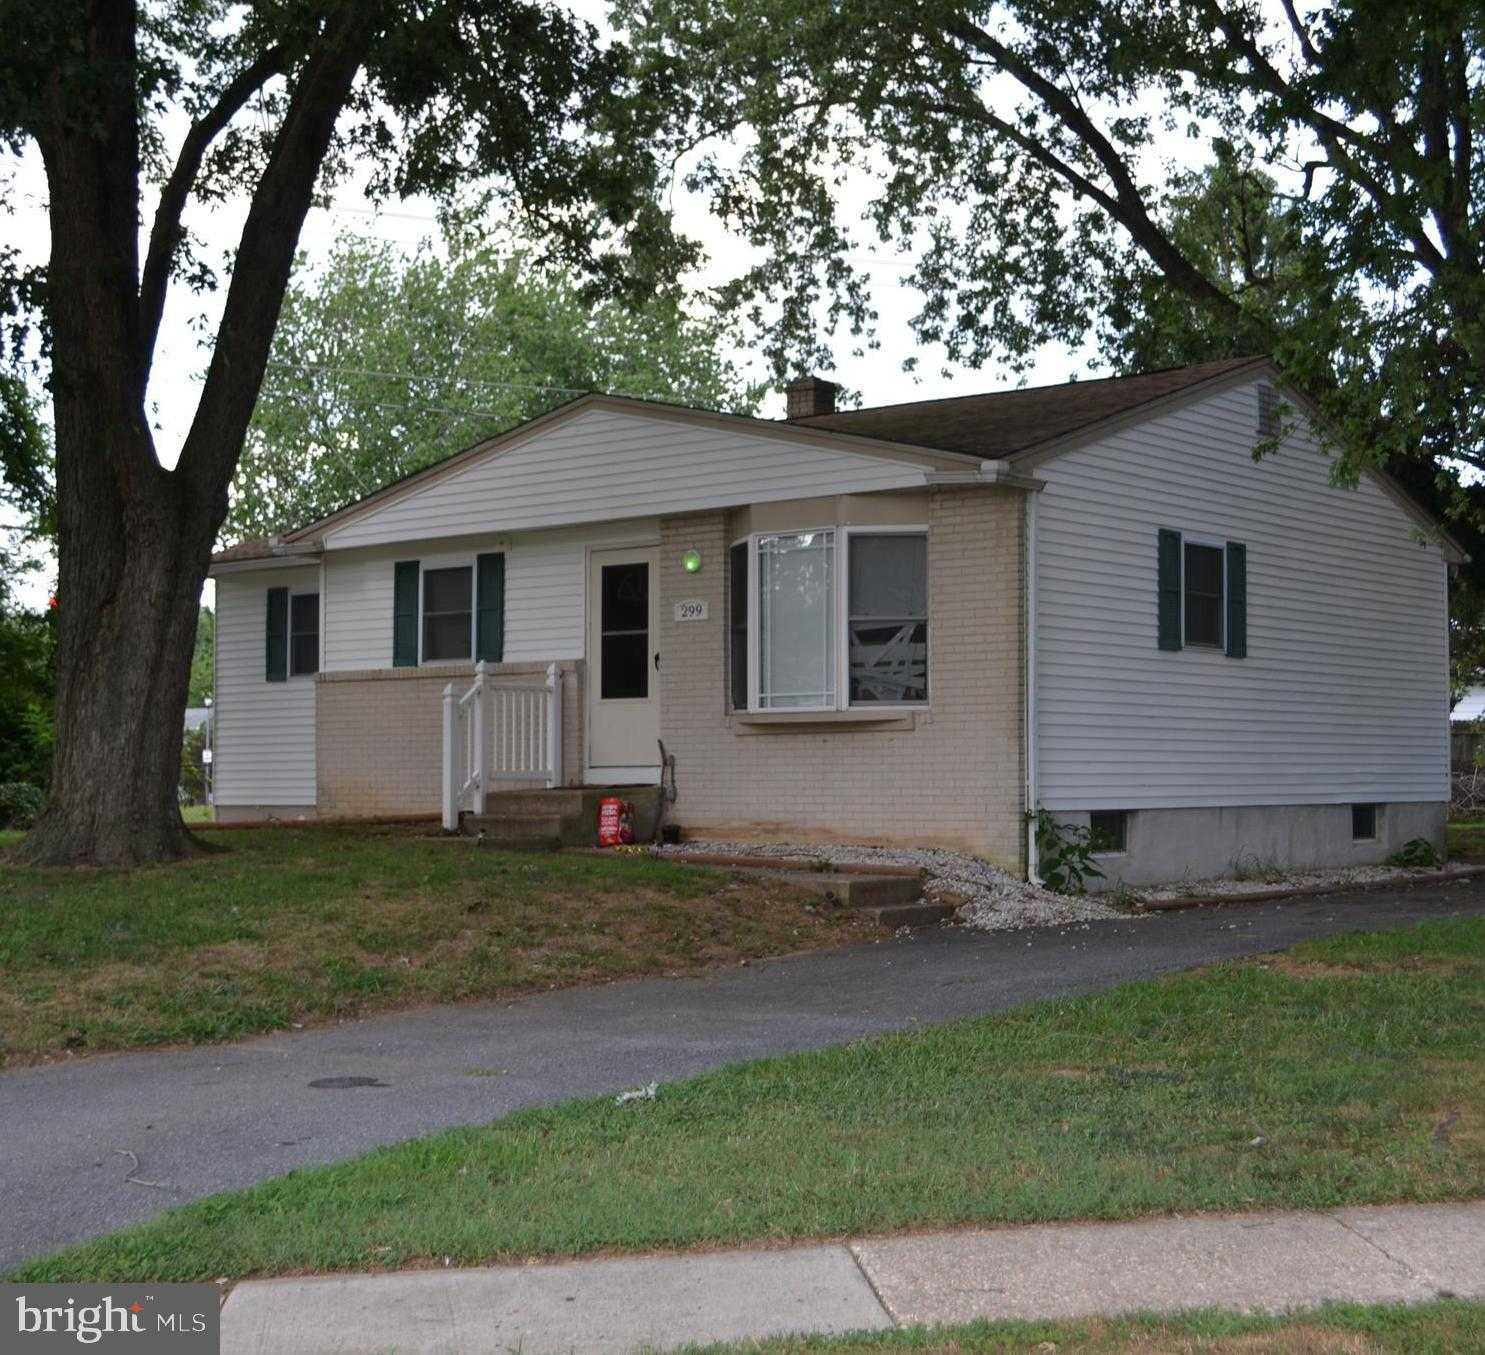 $172,500 - 3Br/2Ba -  for Sale in Rodney Vil, Dover